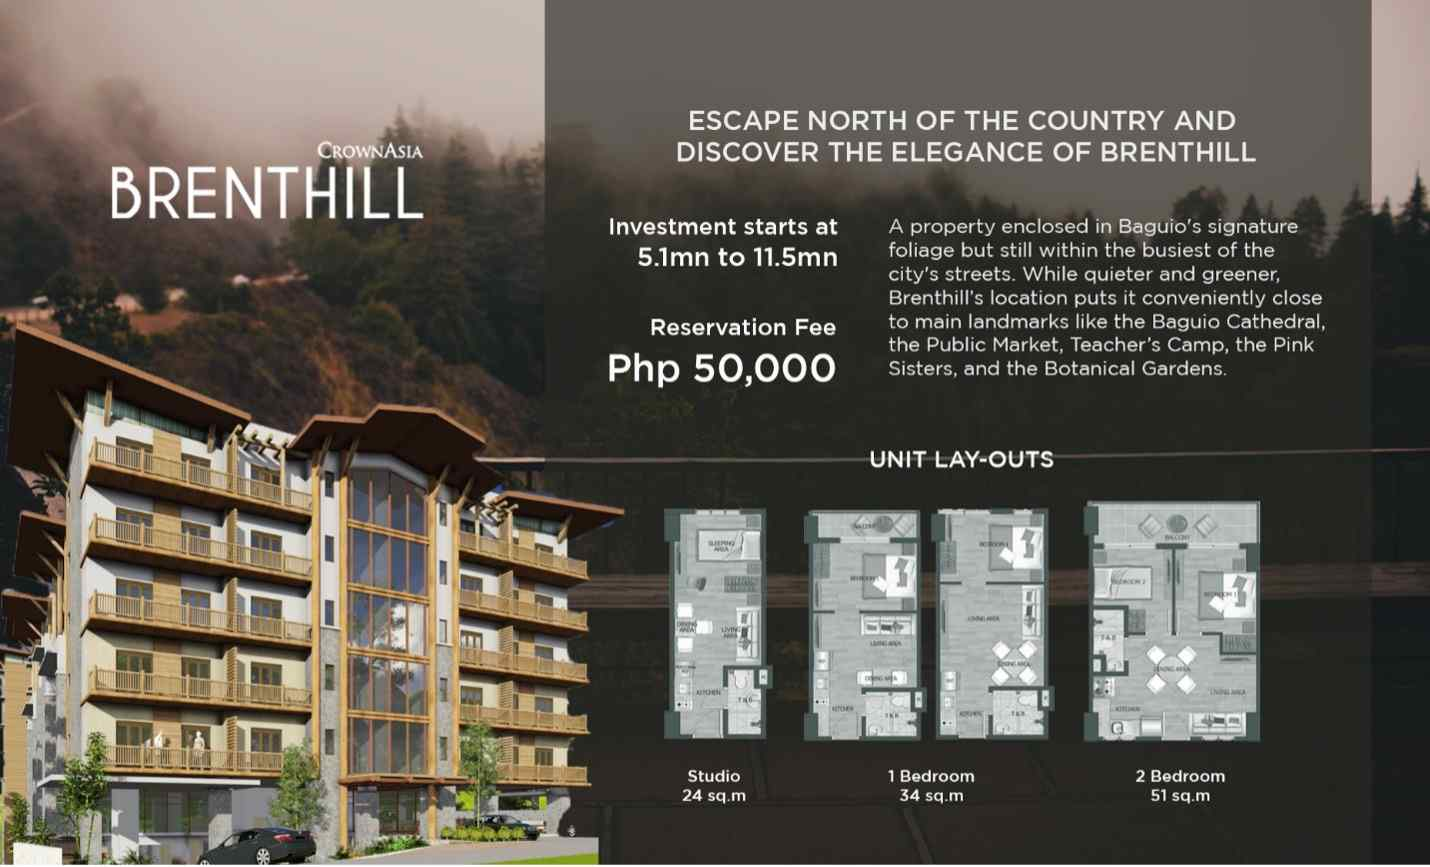 Escape to the North of the Country and Discover the Elegance of Brenthill 2